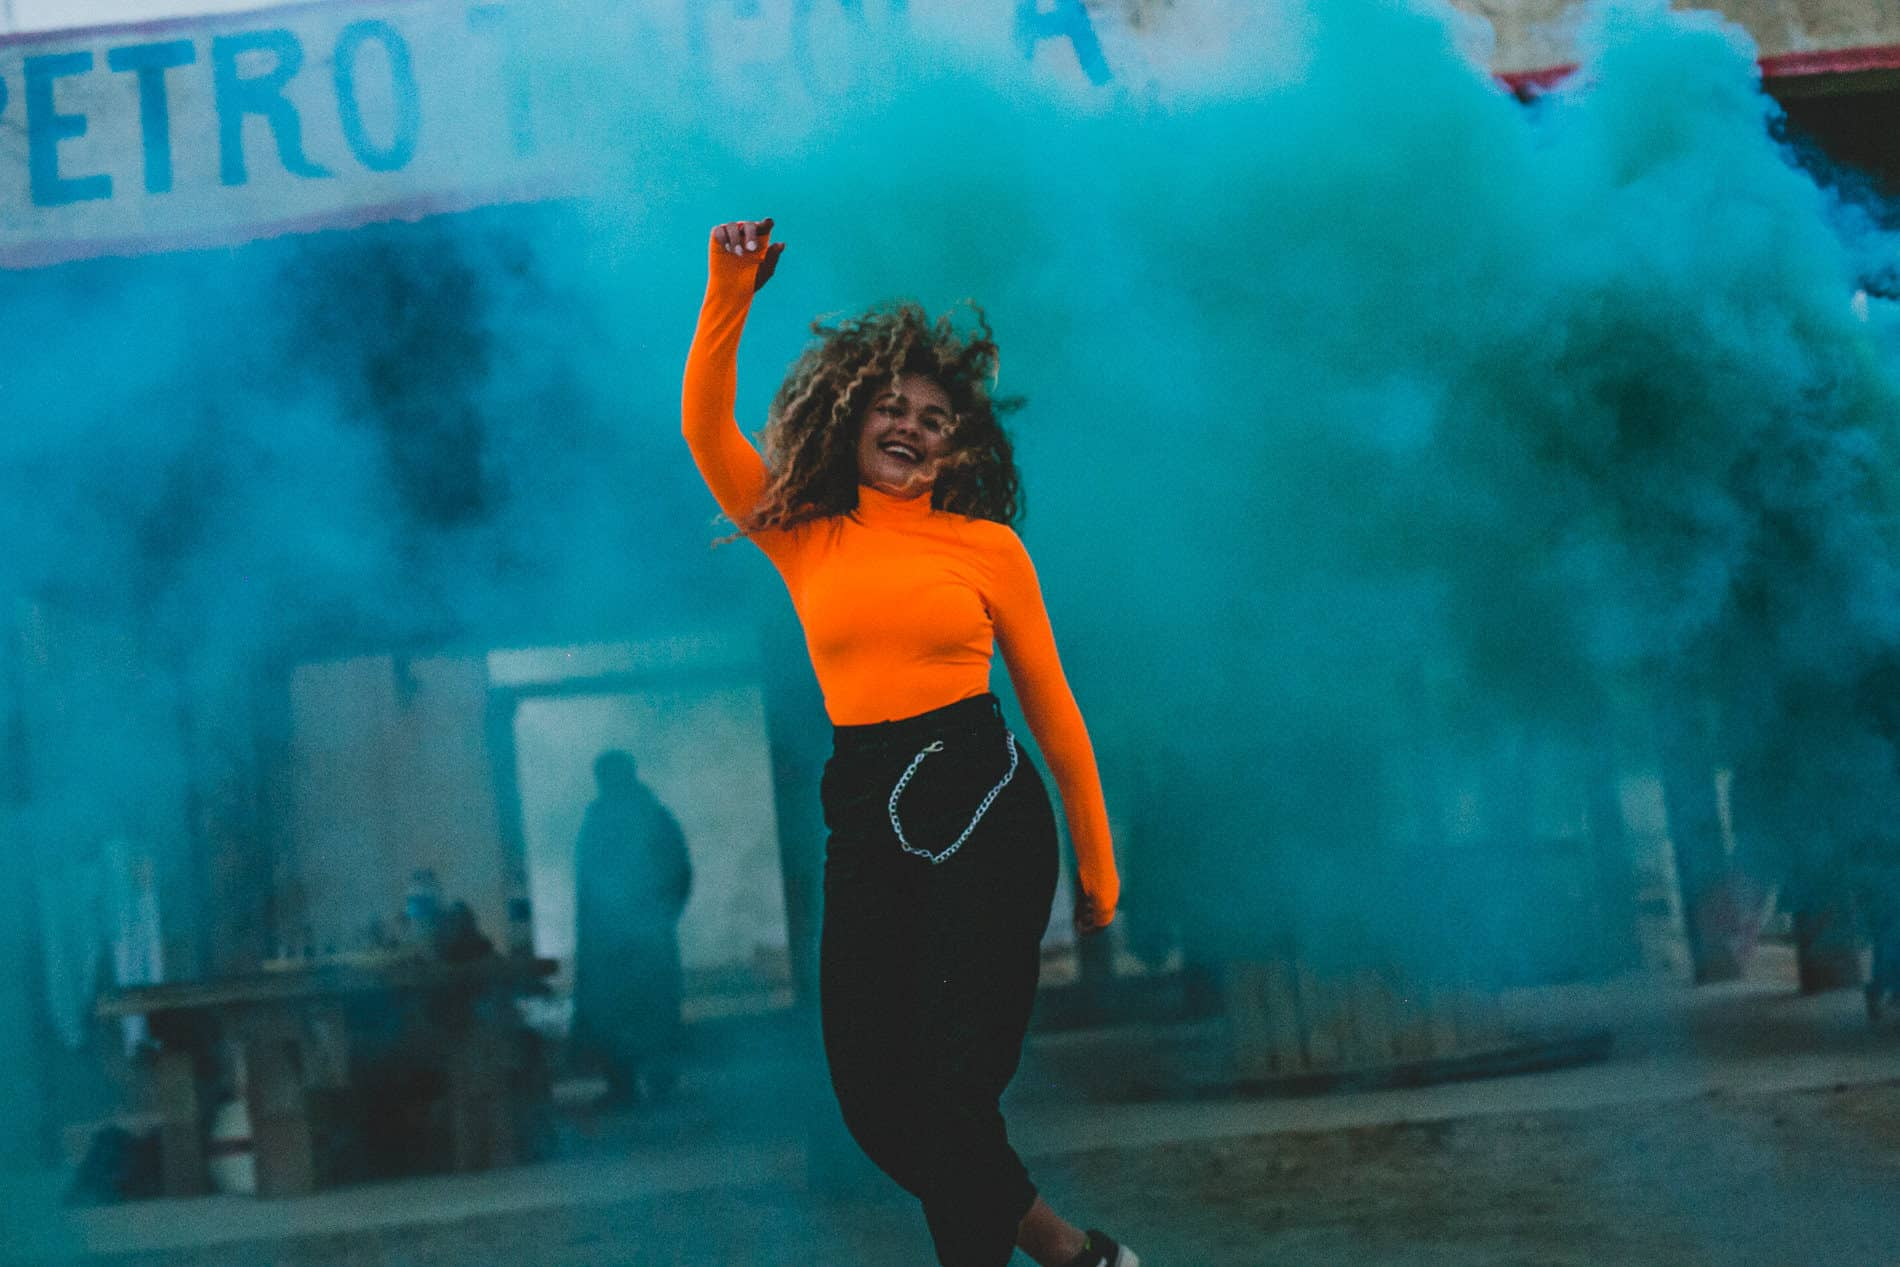 girl with an orange top dancing in blue fog